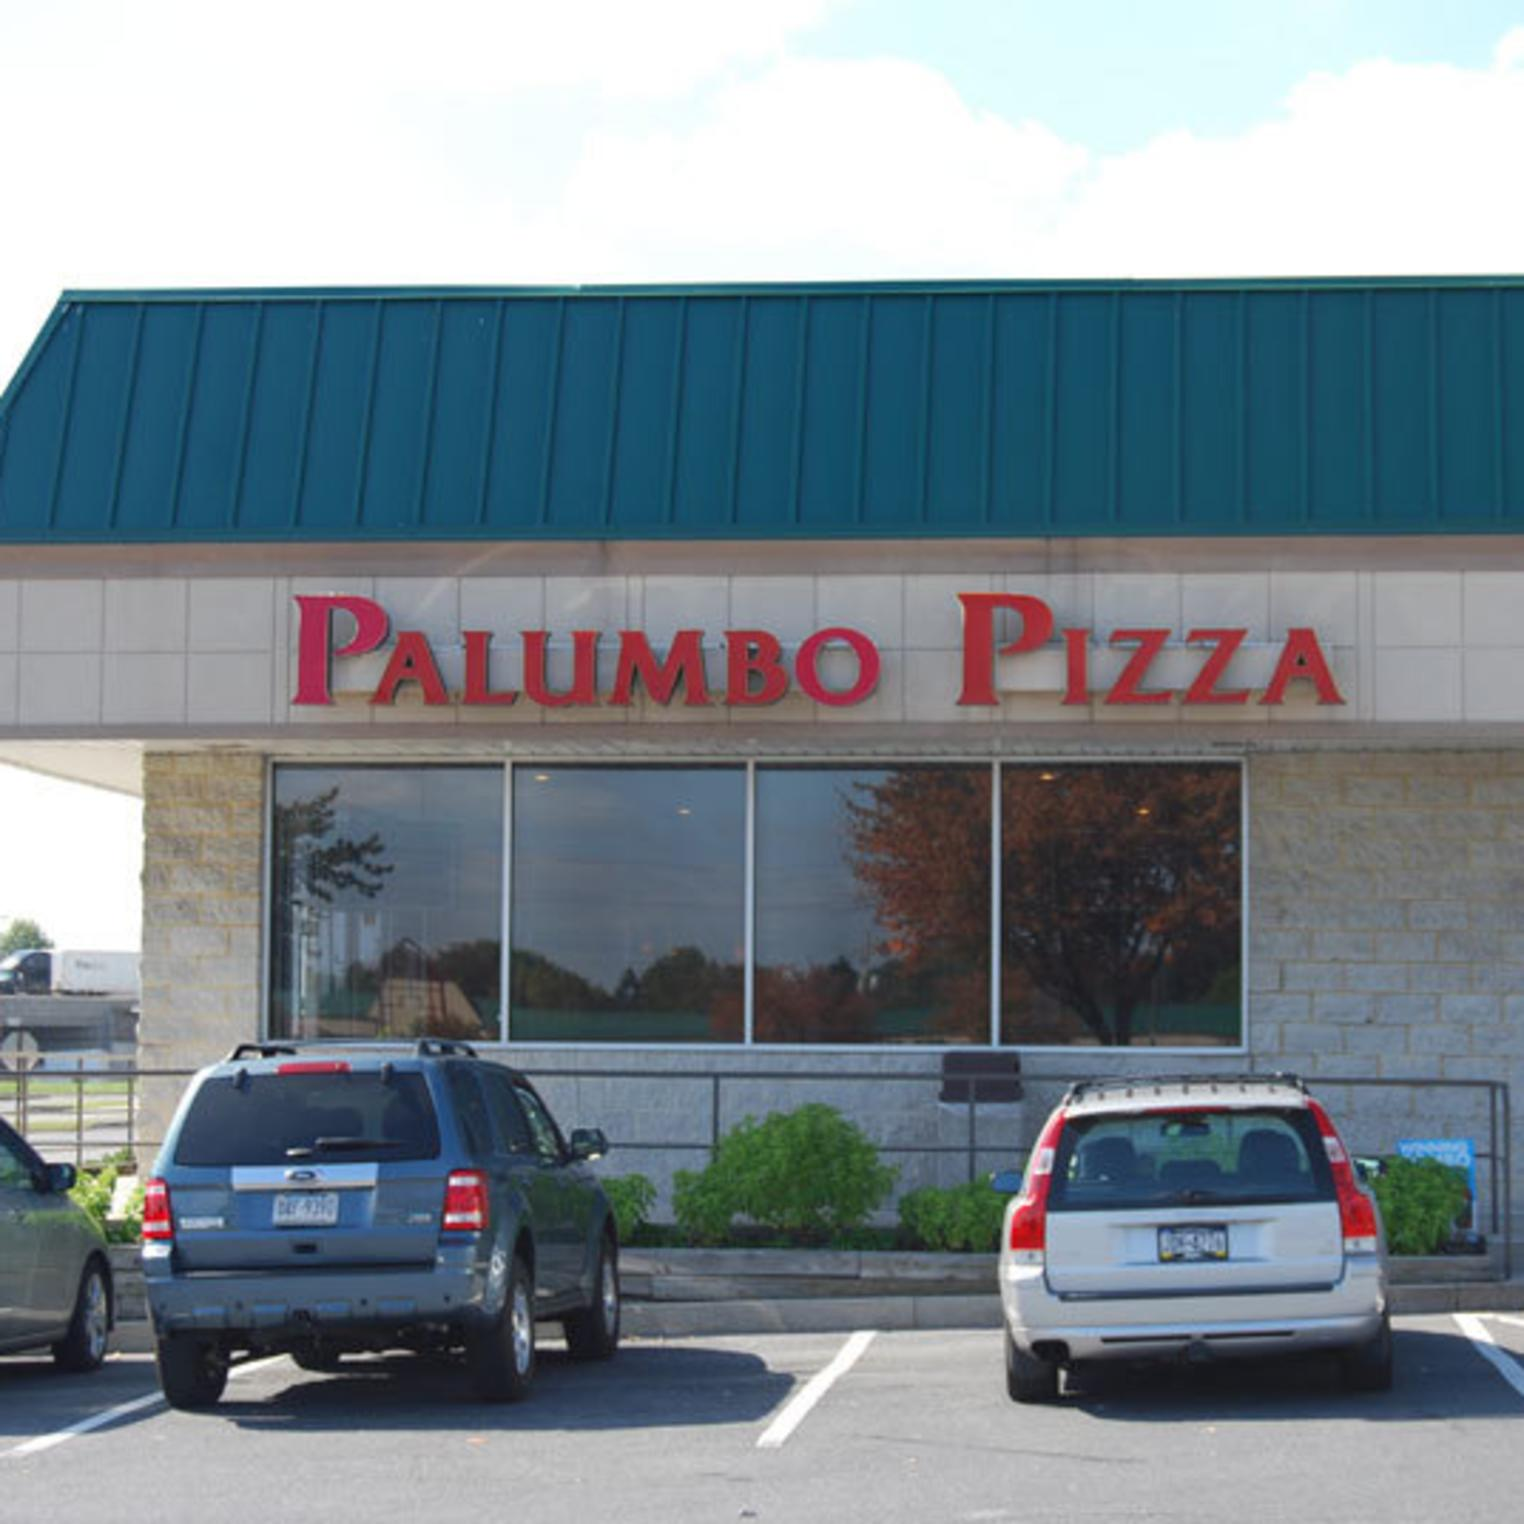 Palumbo Pizza